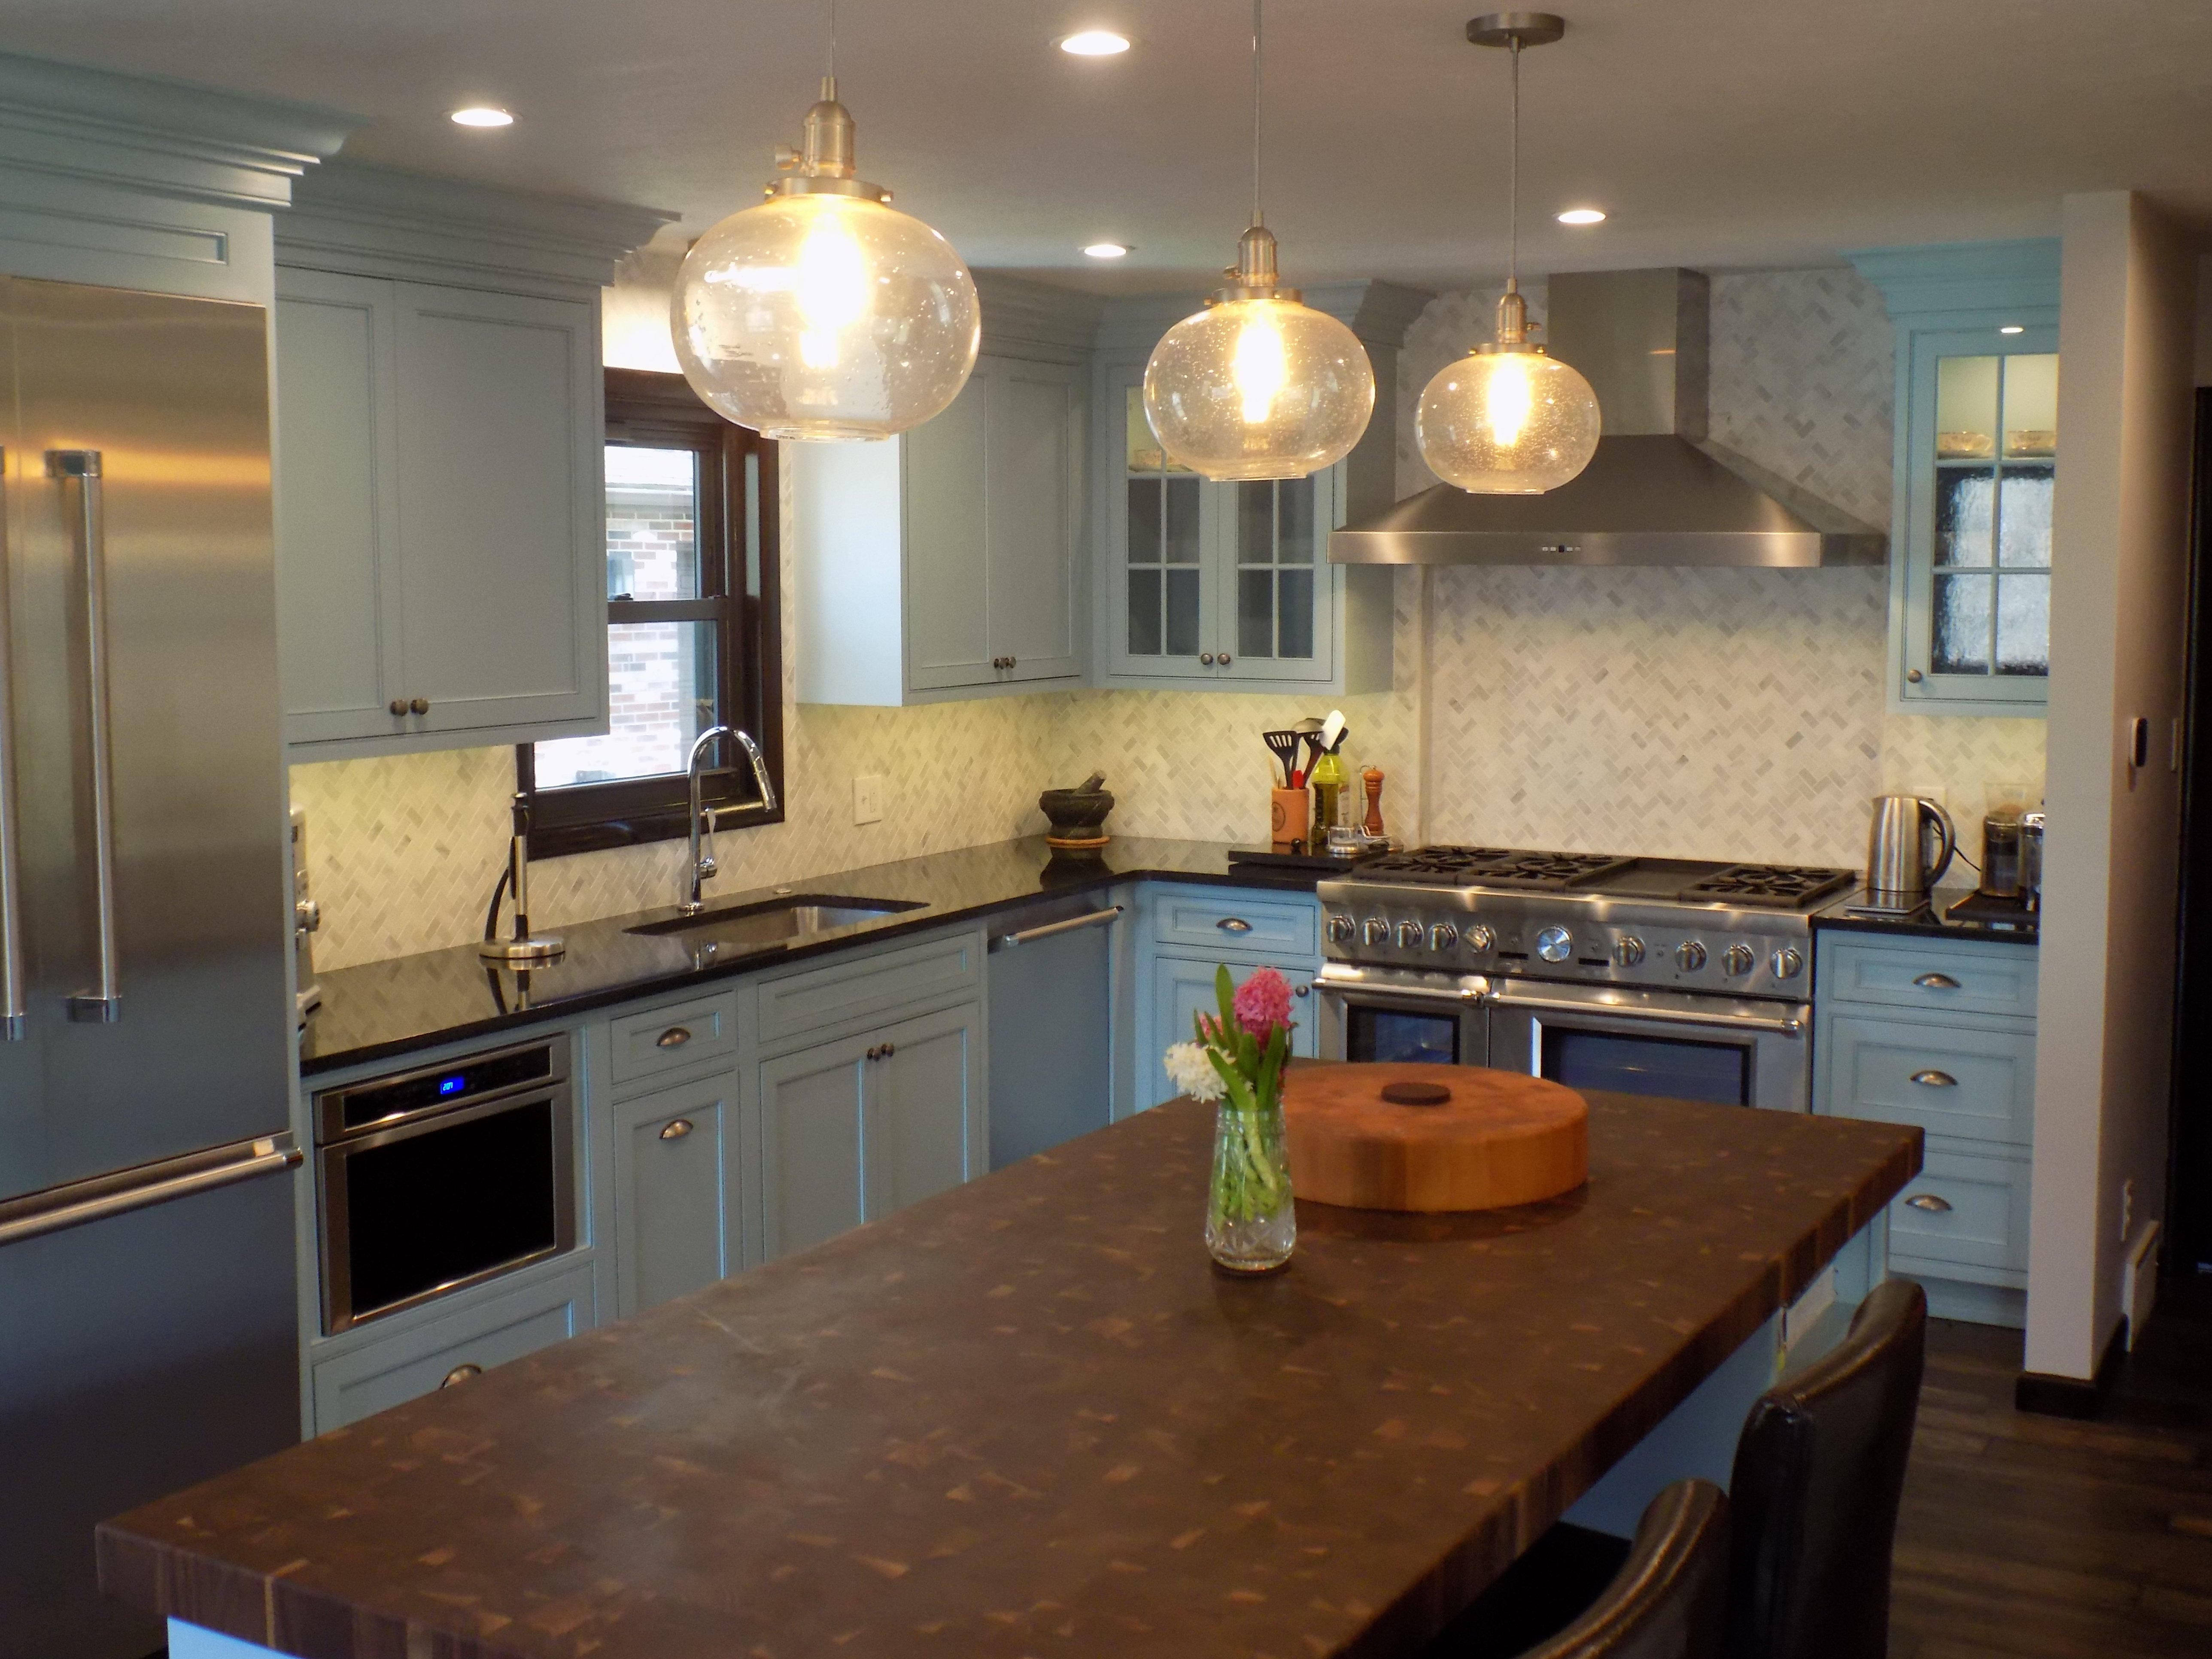 transitional kitchen remodel in irvine, pa